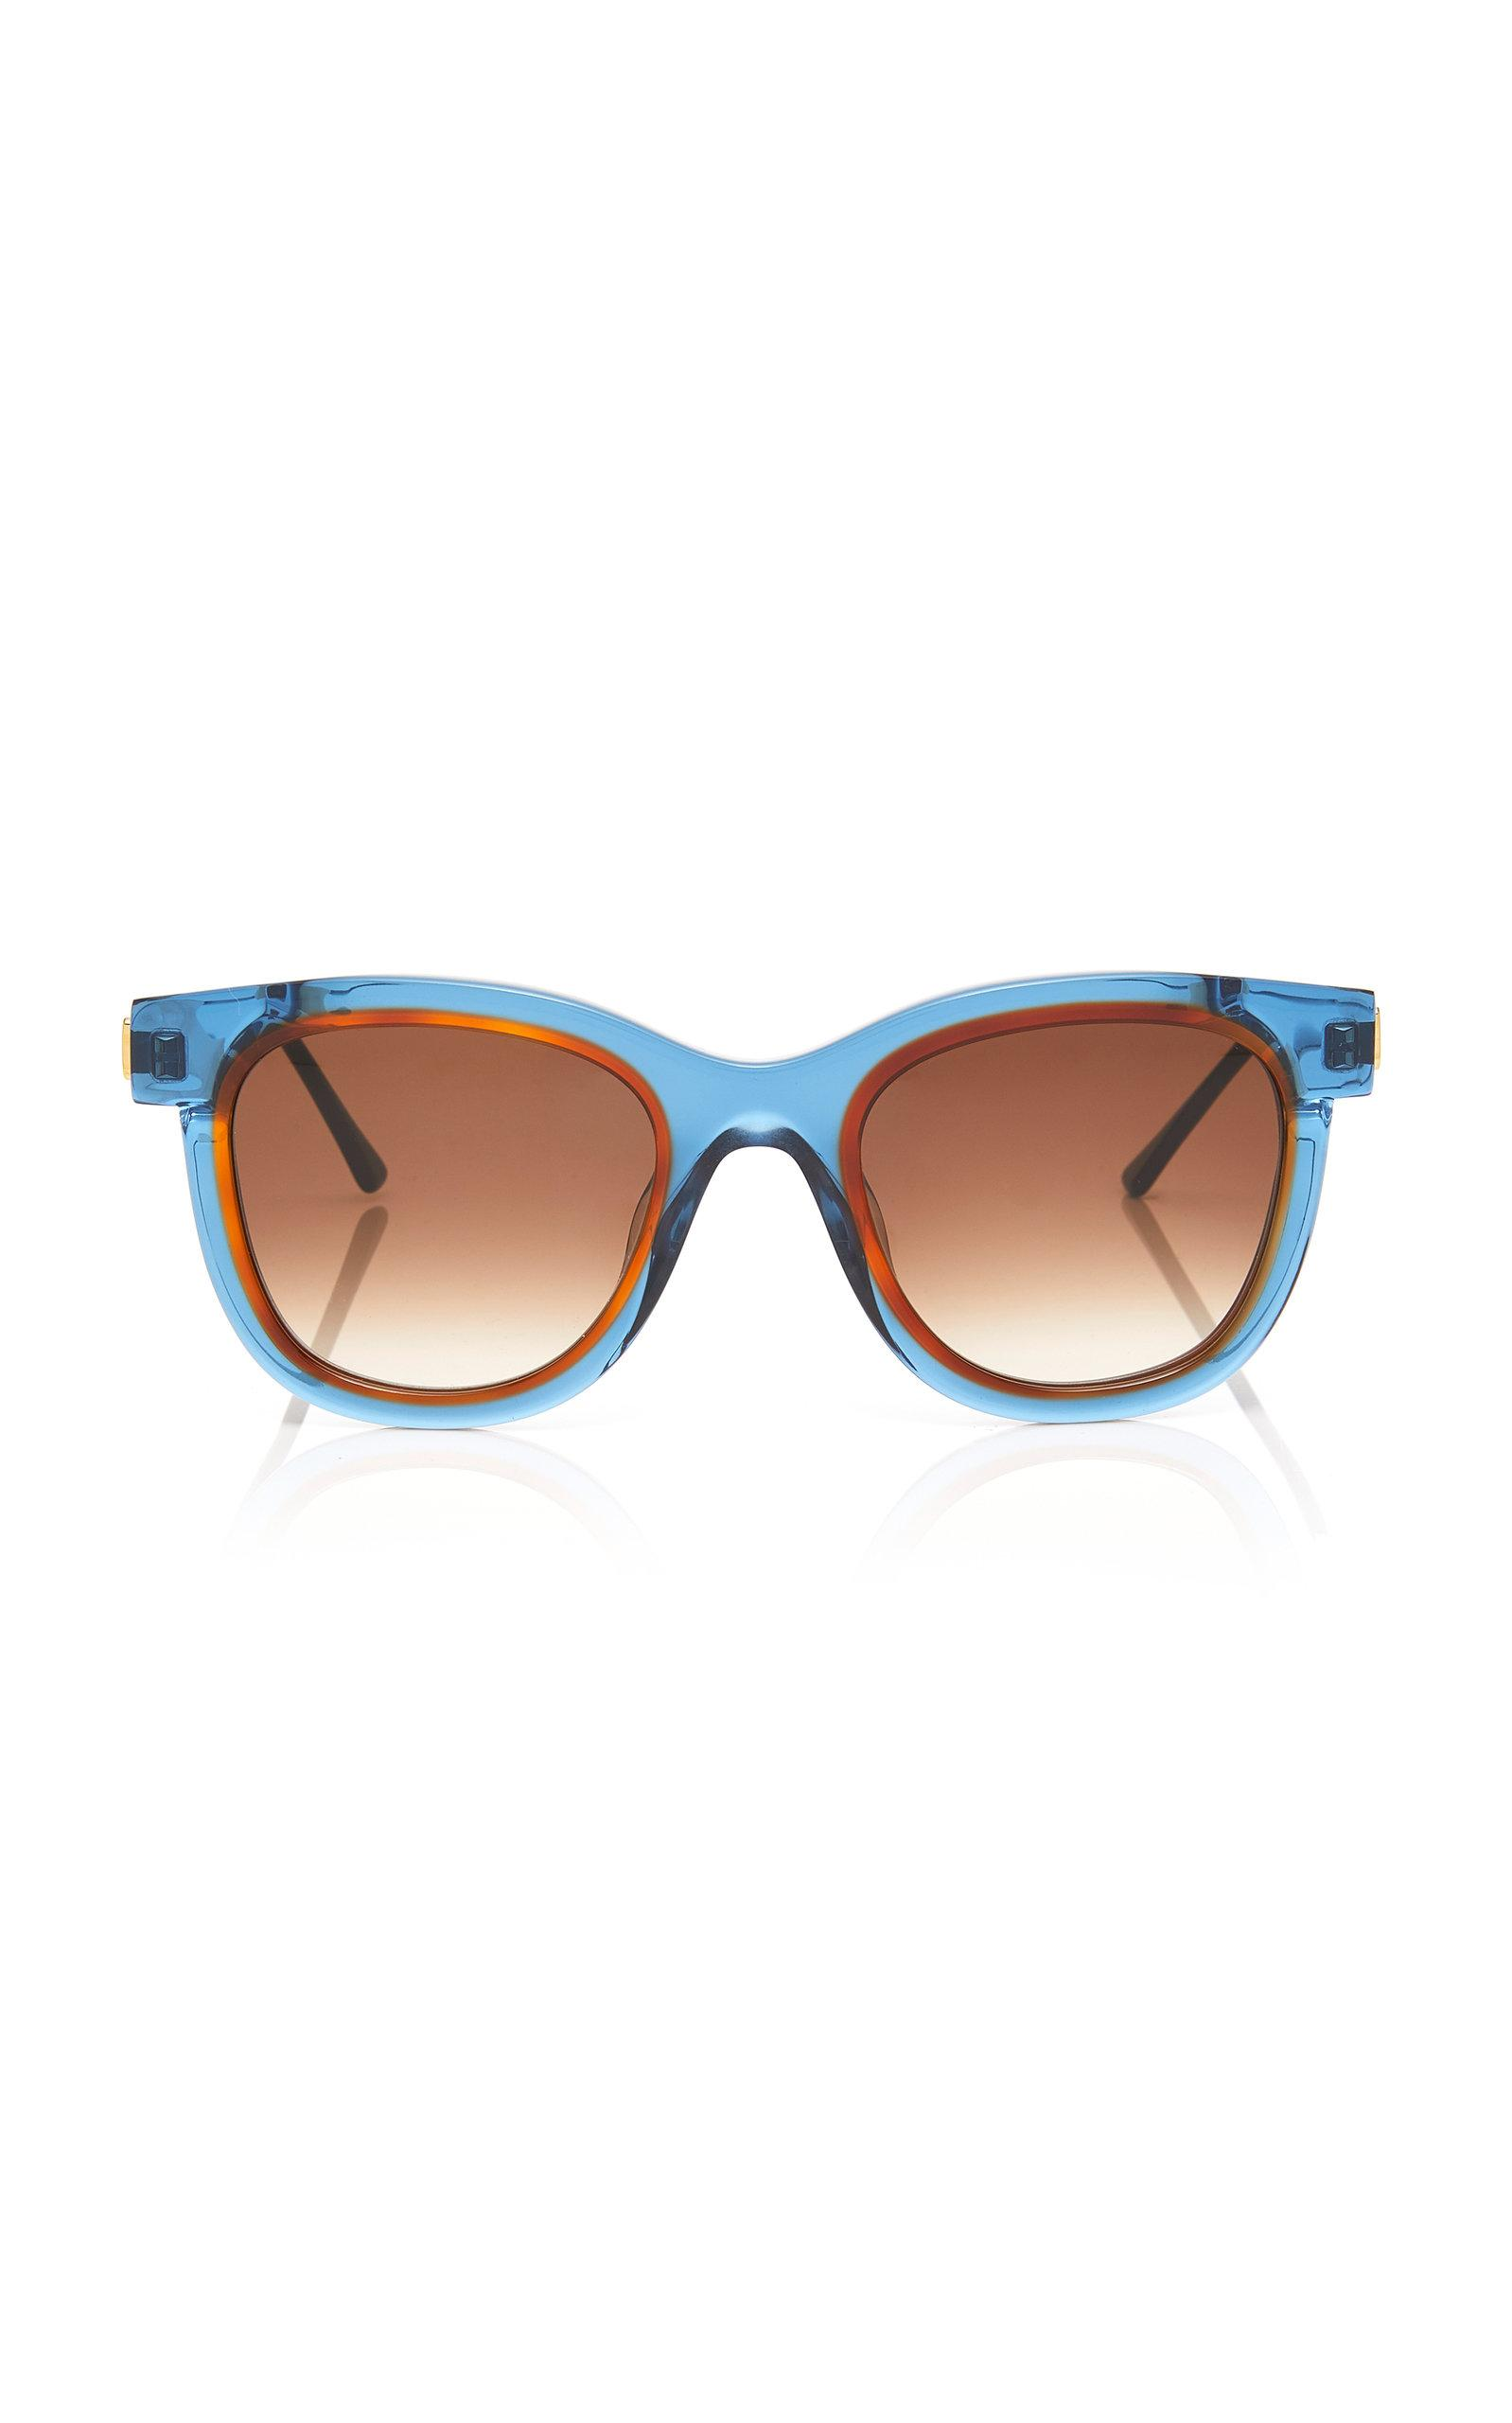 7302fb5852 Lyst - Thierry Lasry Savvvy Square-frame Acetate Sunglasses in Blue